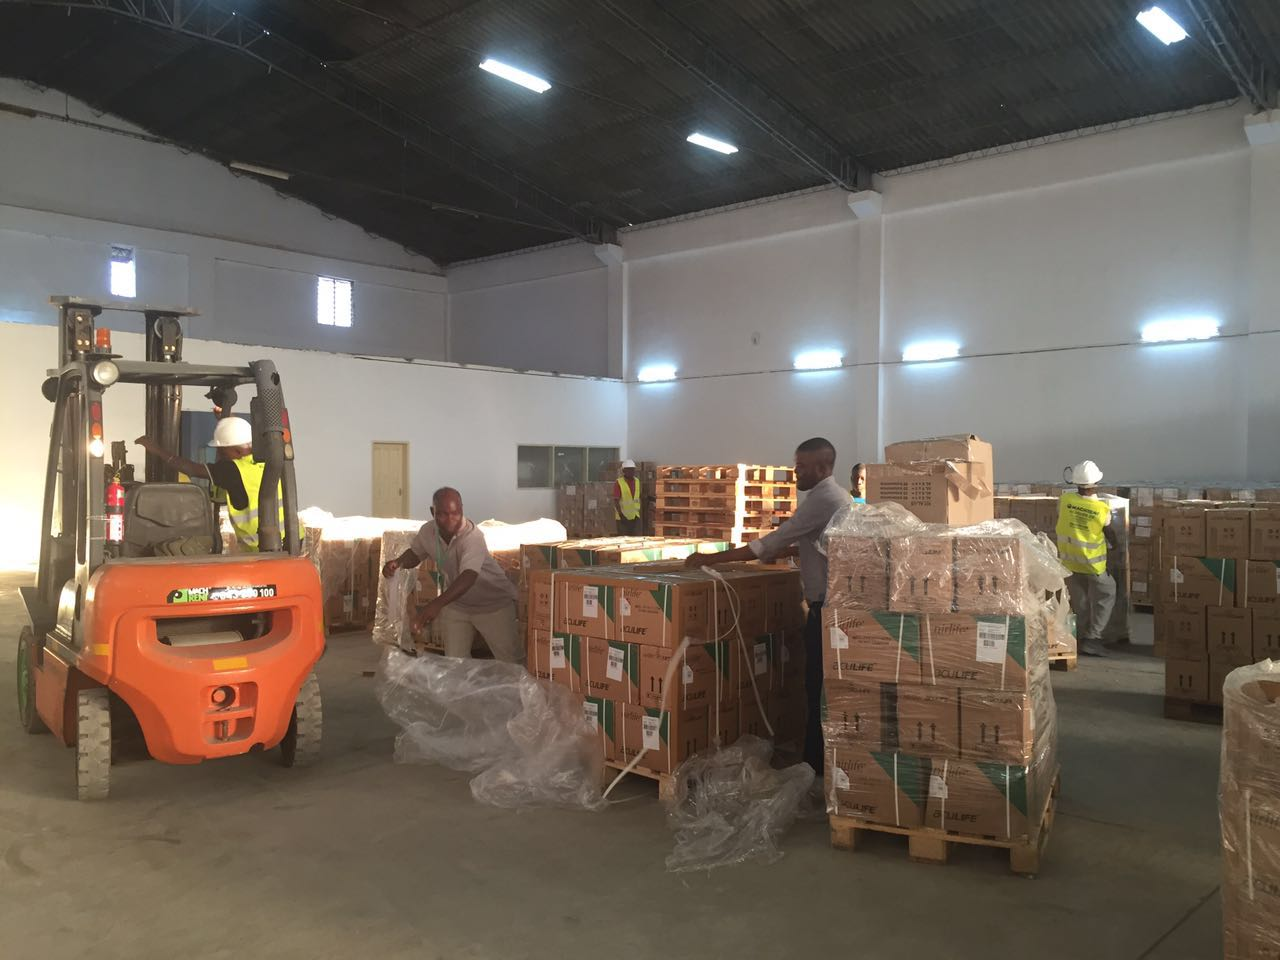 Workers move boxes in a warehouse in Mozambique.